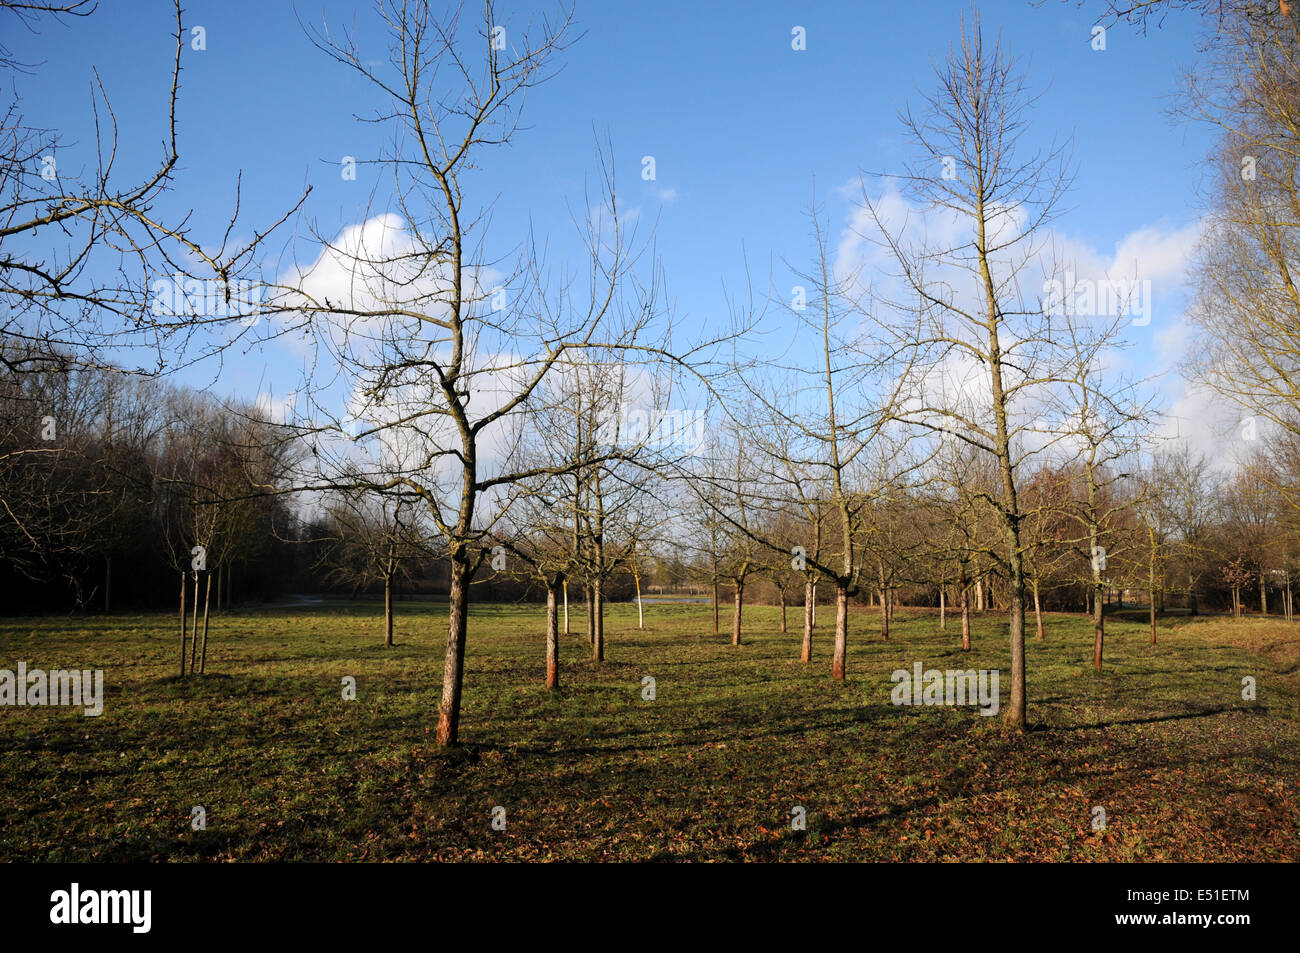 Fruit trees - Stock Image